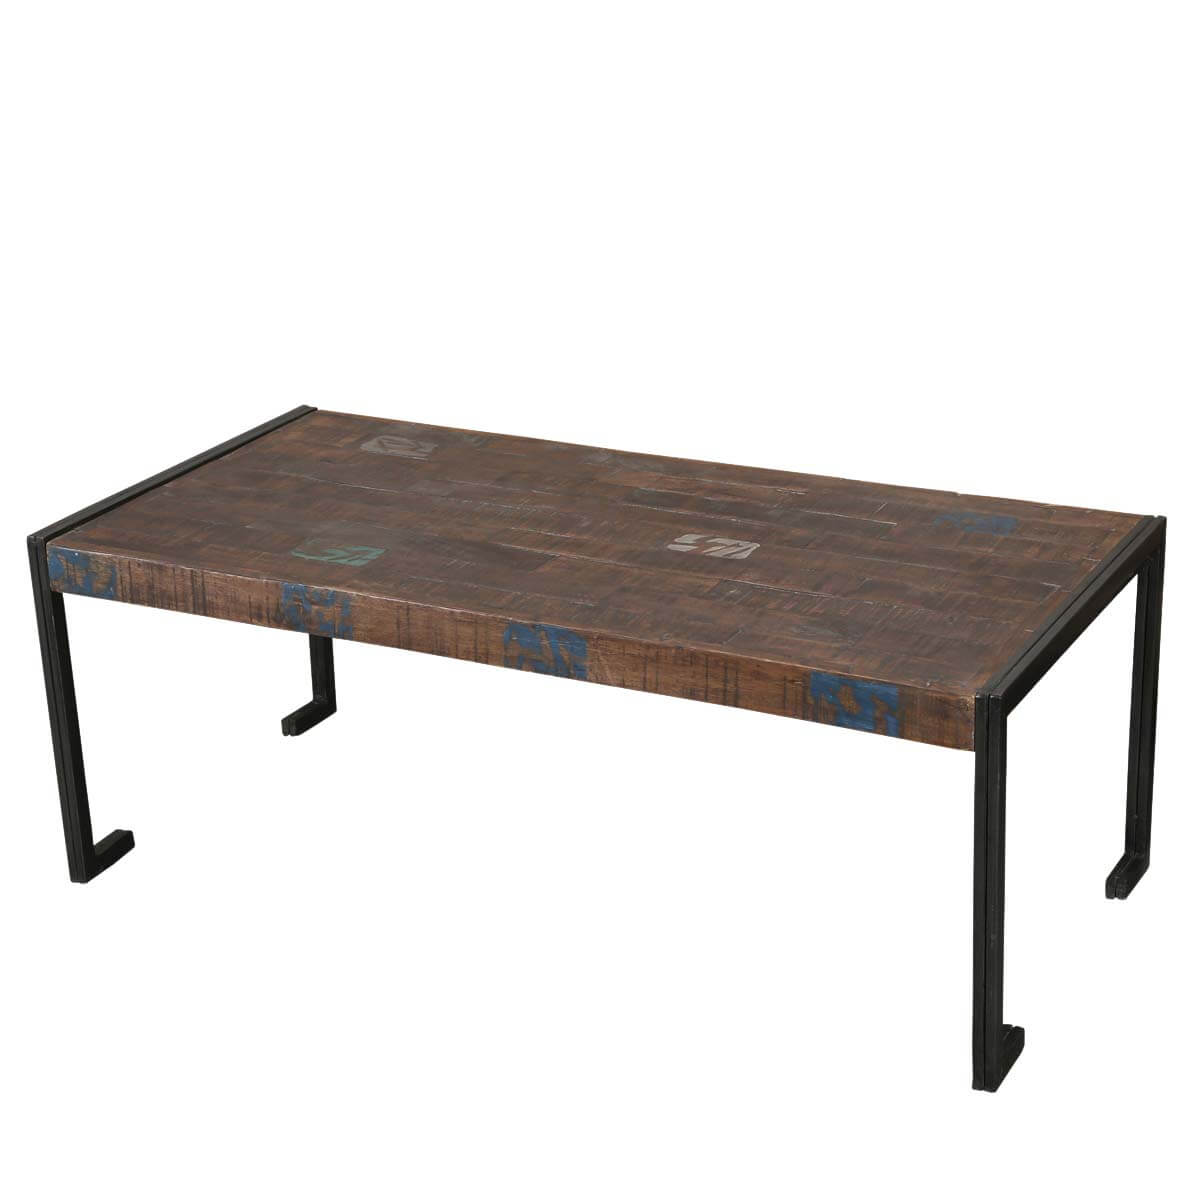 Philadelphia reclaimed wood industrial metal frame rustic coffee table Rustic wooden coffee tables